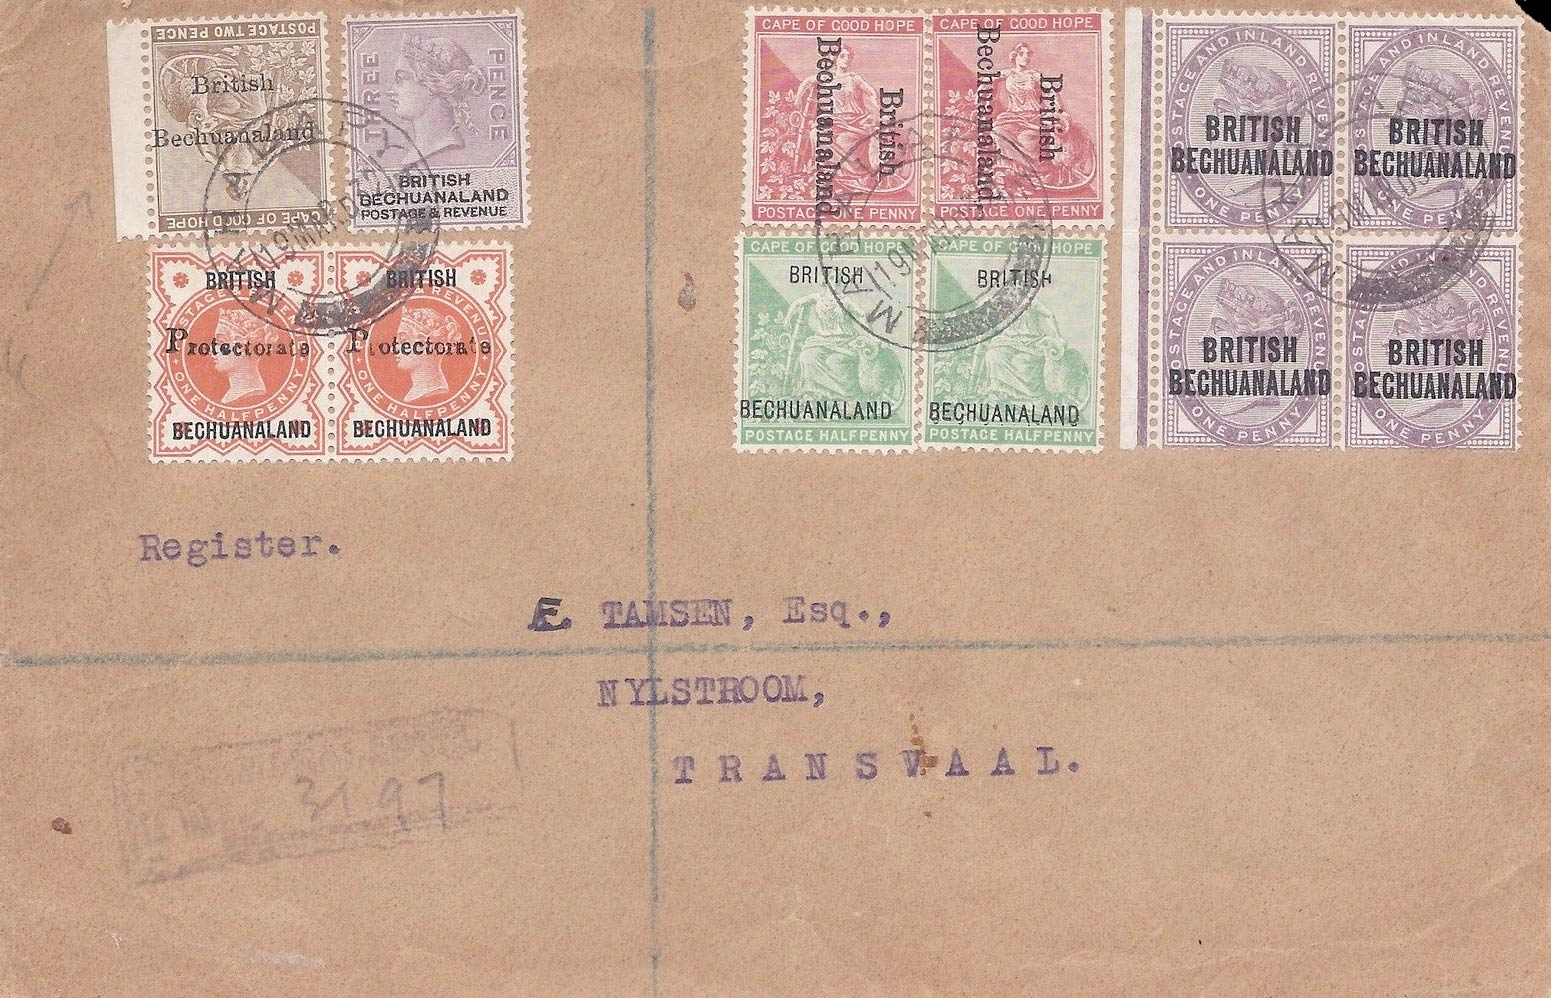 British_Bechuanaland_Cover_Forgery